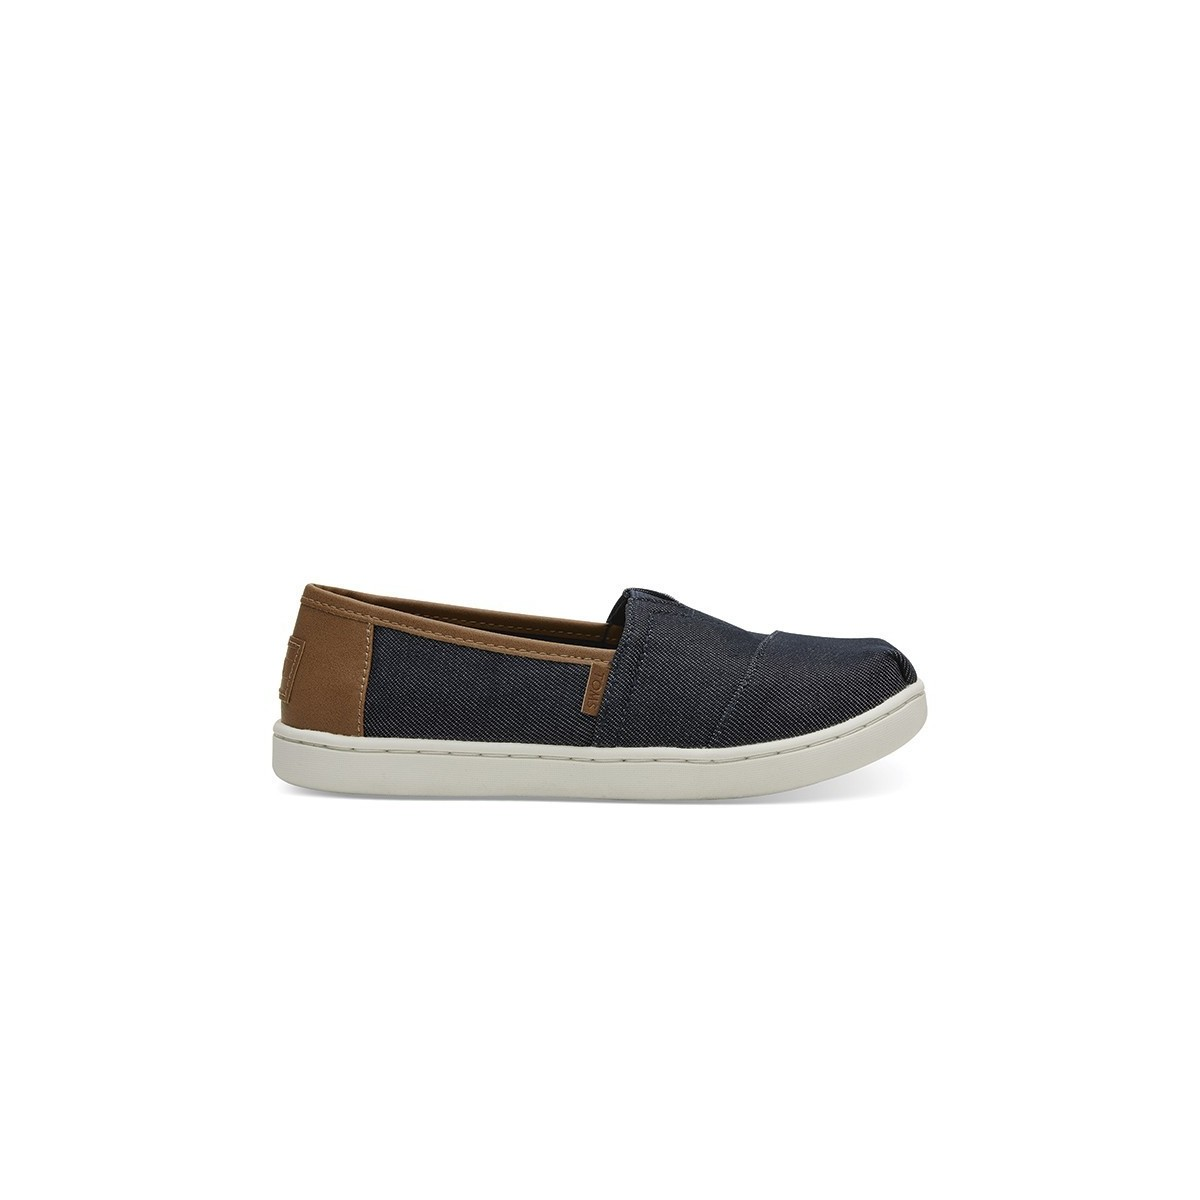 Basket Toms toile Classic Denim navy